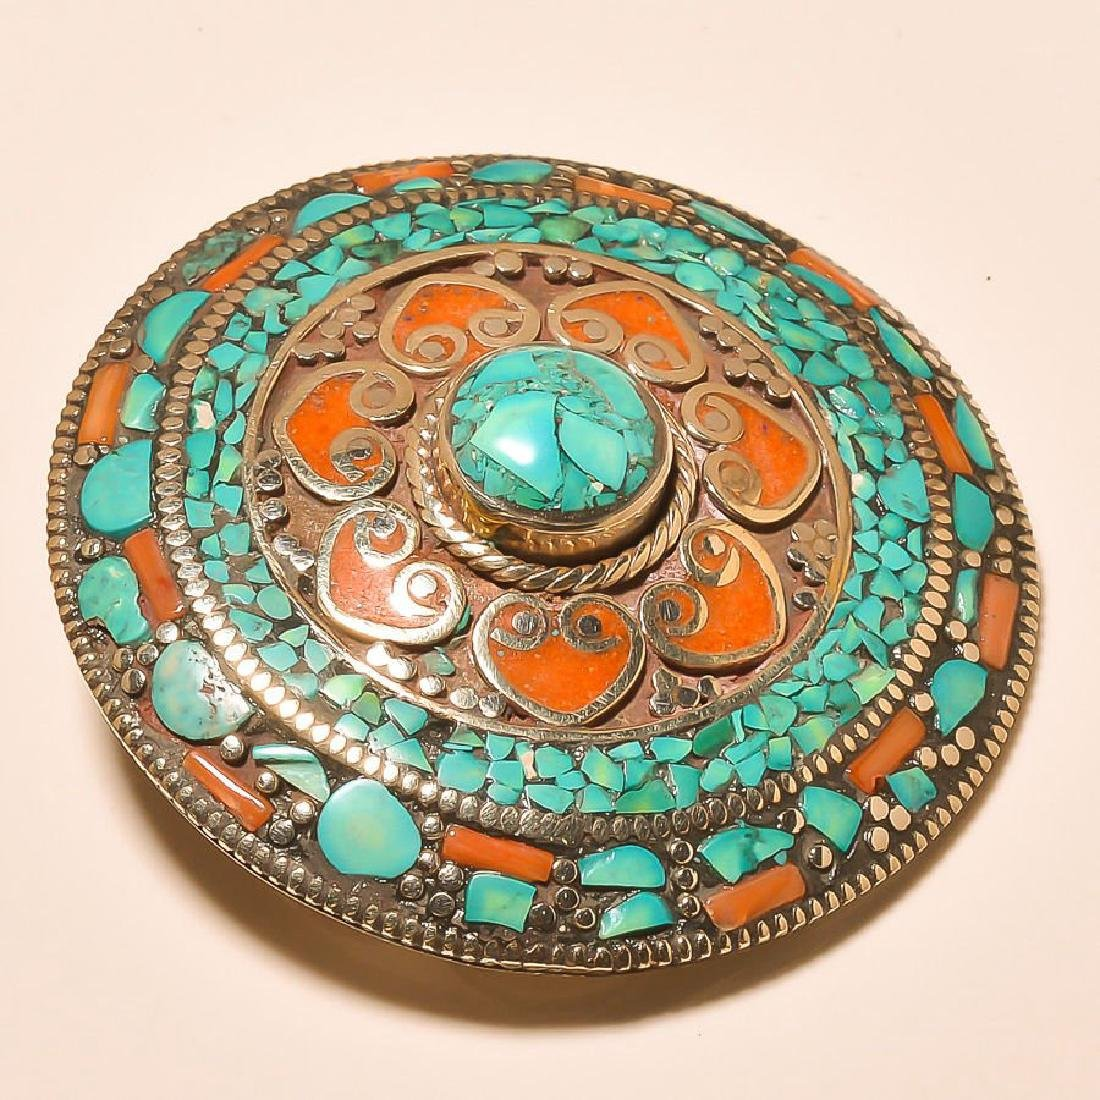 Red Coral & Turquoise -925 Silver Belt buckle